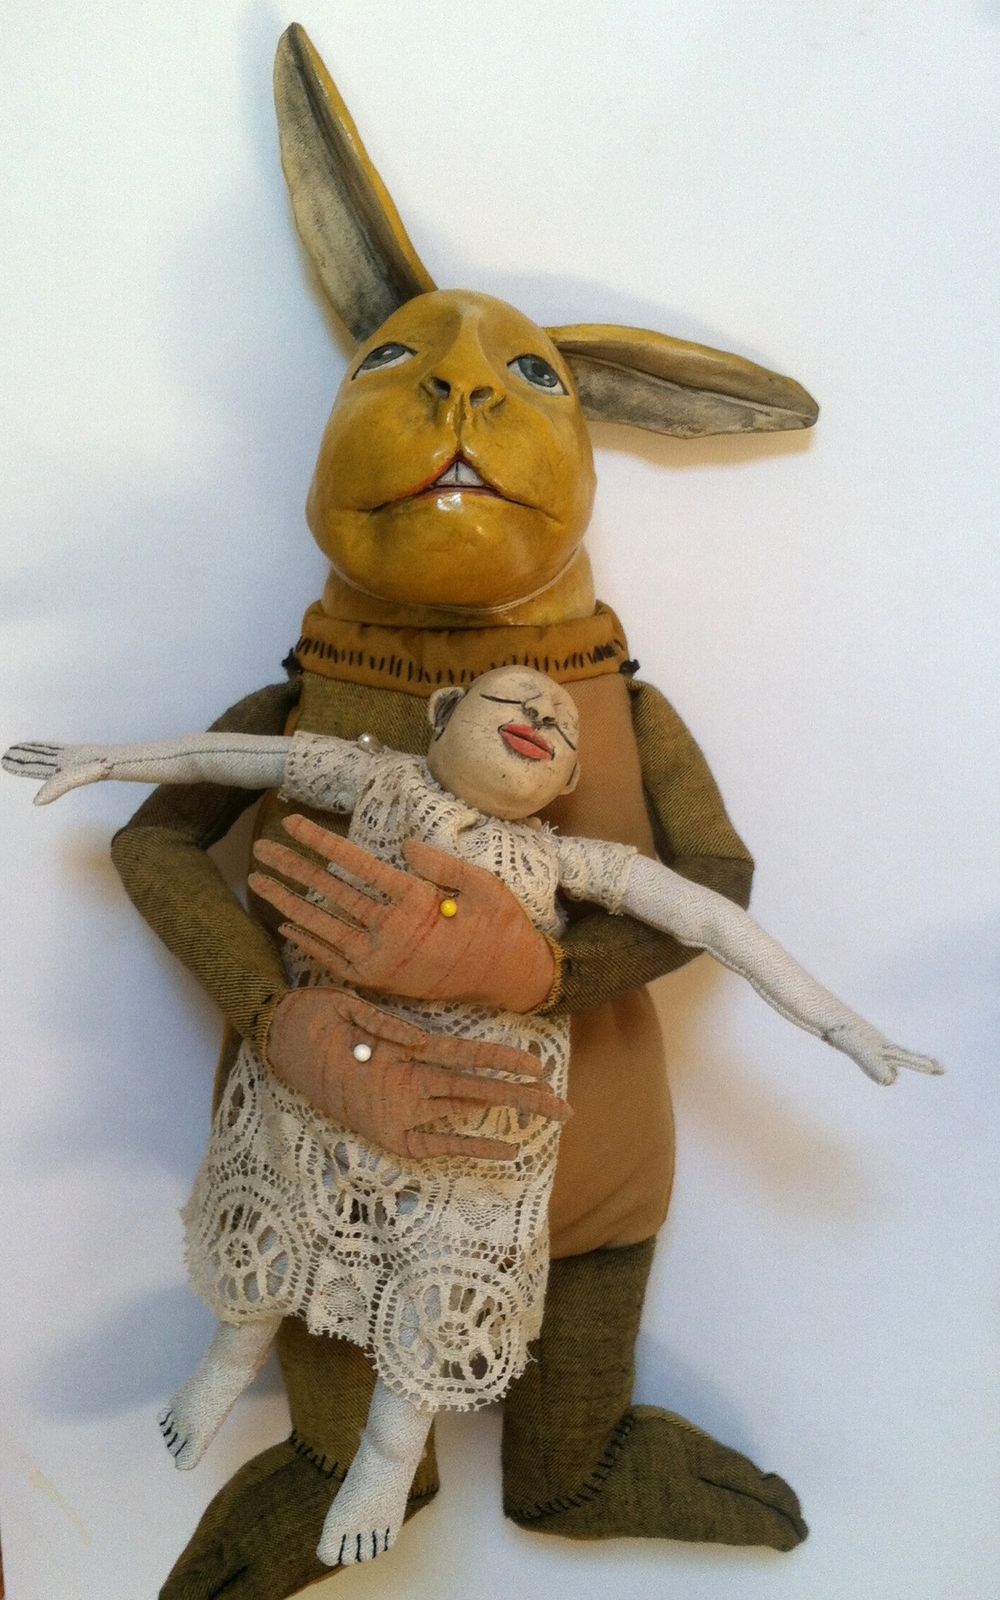 Rabbit did not so much love his Human Doll as depend on her for comfort, compliments, and someone to bounce ideas off of.